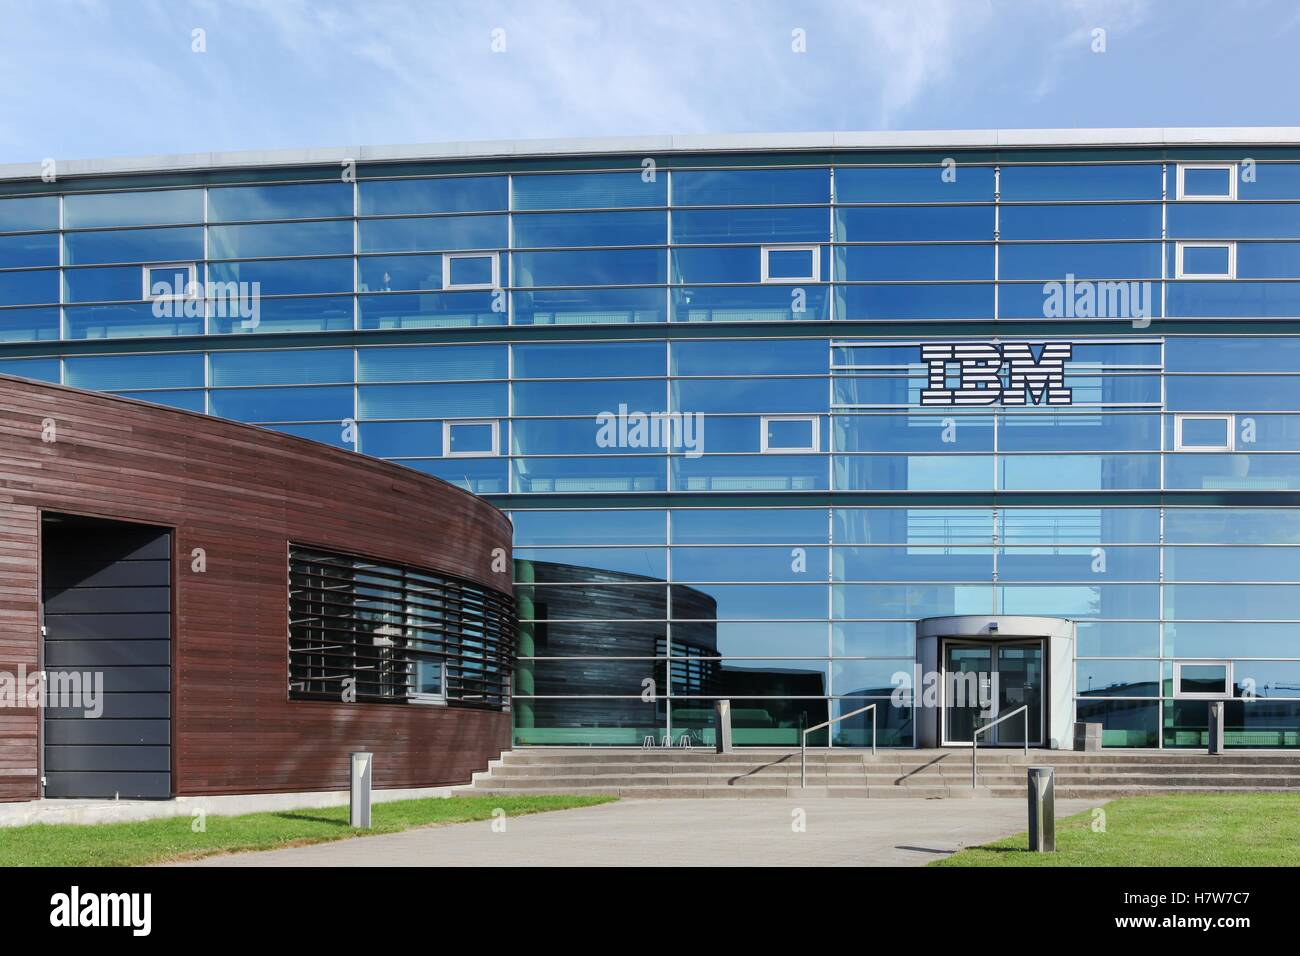 IBM building and office in Denmark - Stock Image